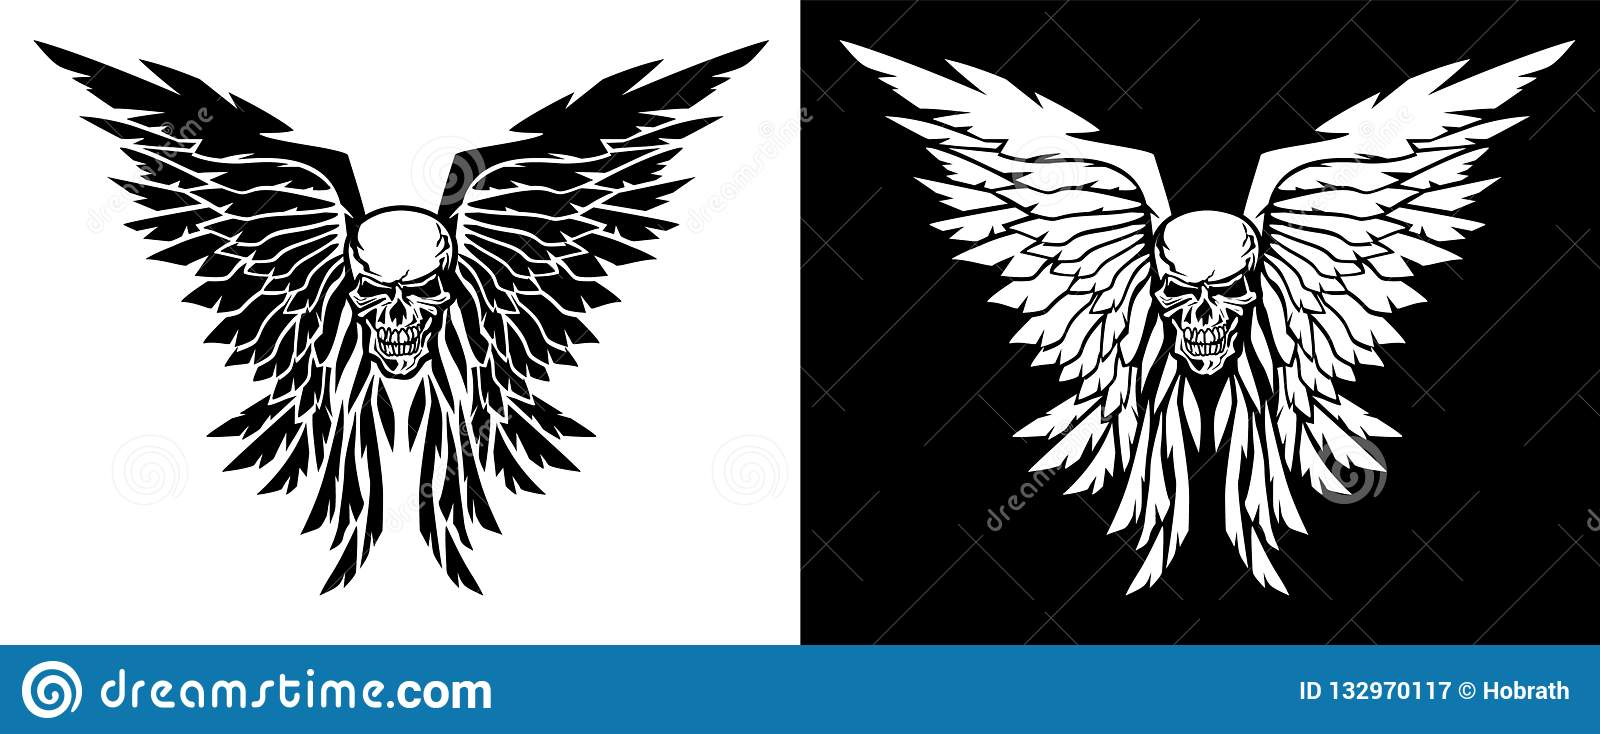 Classic skull and wings vector illustration in both black and white versions